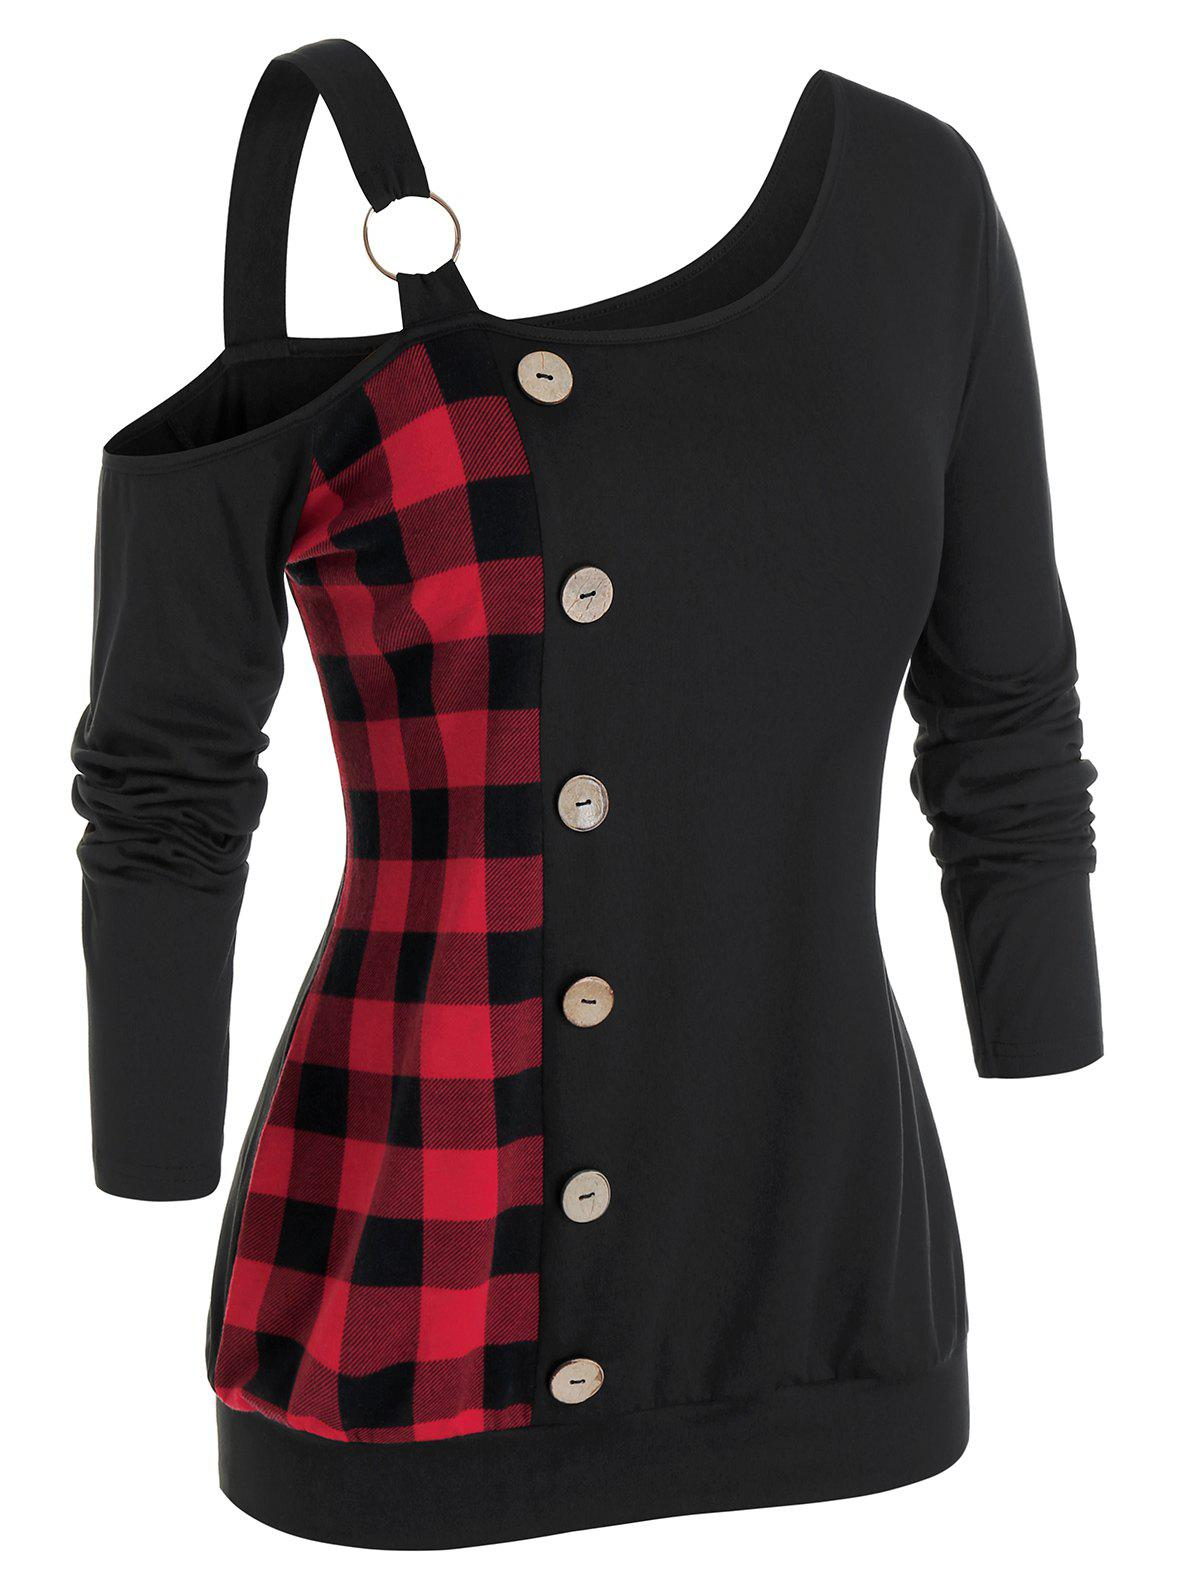 Plus Size Plaid Skew Neck Sweatshirt - BLACK 5X